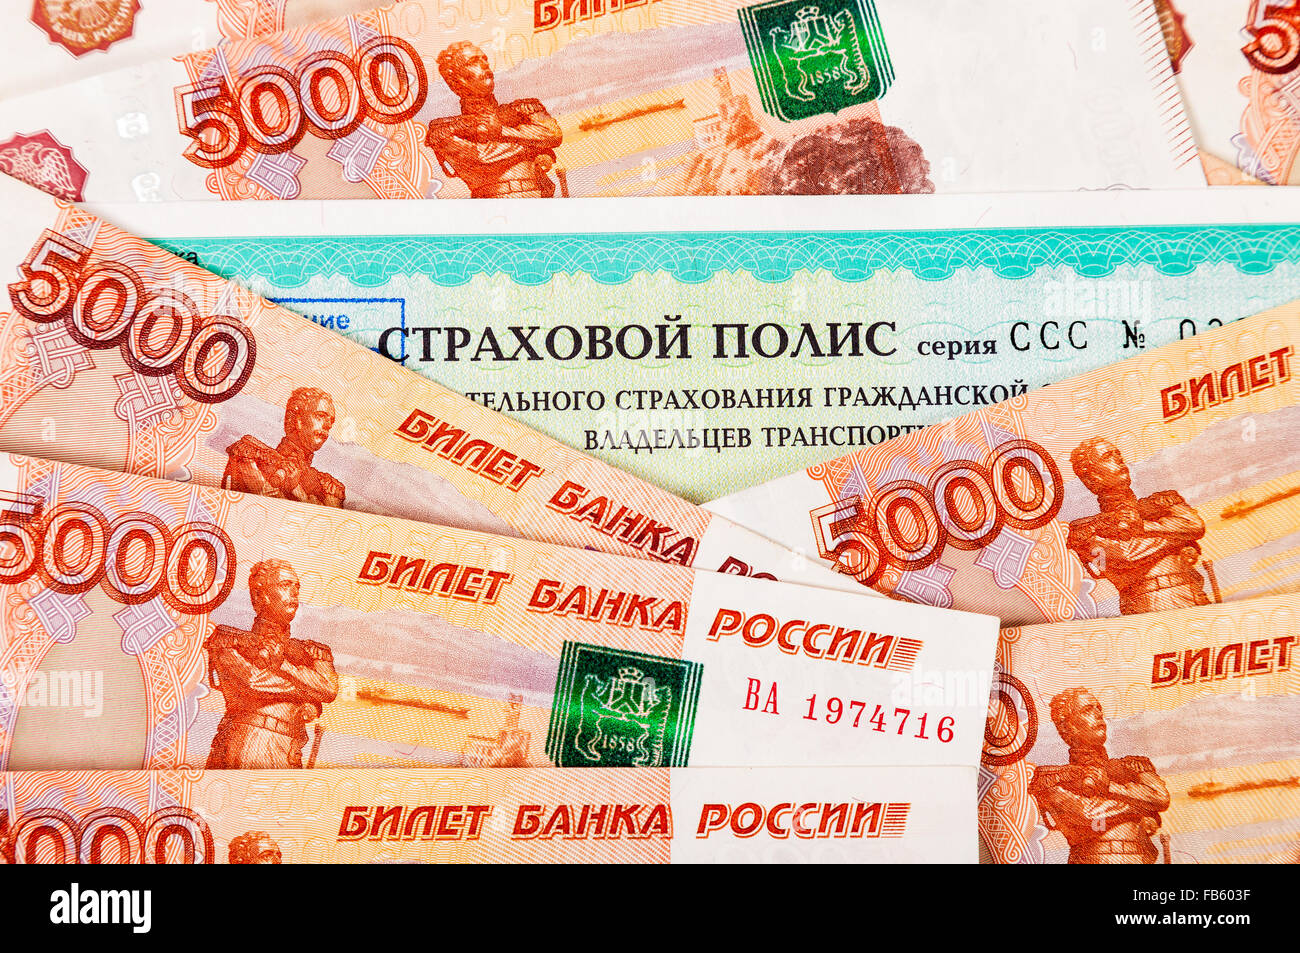 Car Insurance. Compulsory Third Party/Green Slip Insurance policy and russian rubles - Stock Image